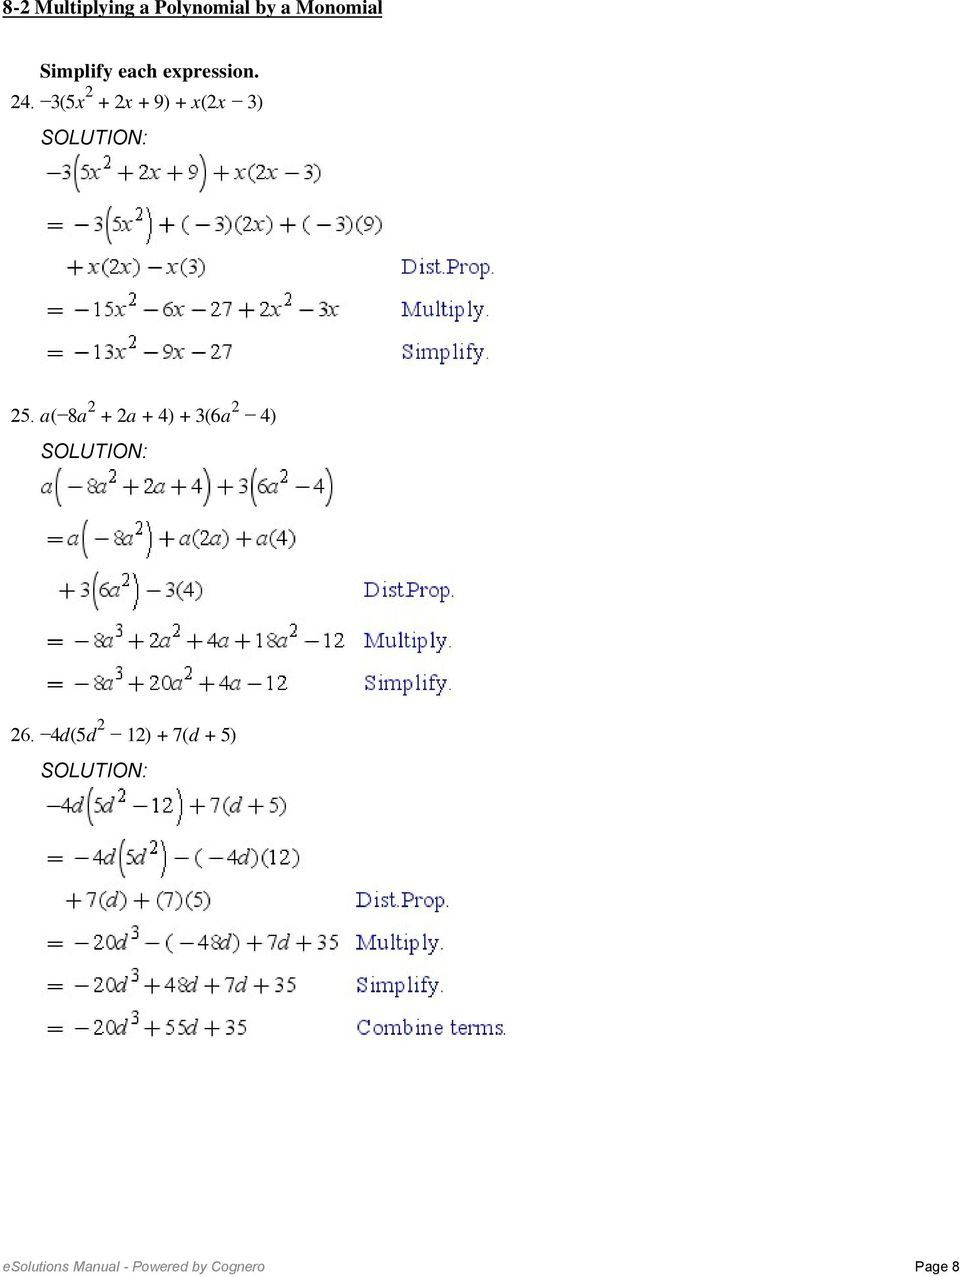 3 Adding And Subtracting Polynomials Worksheet 2 8 2